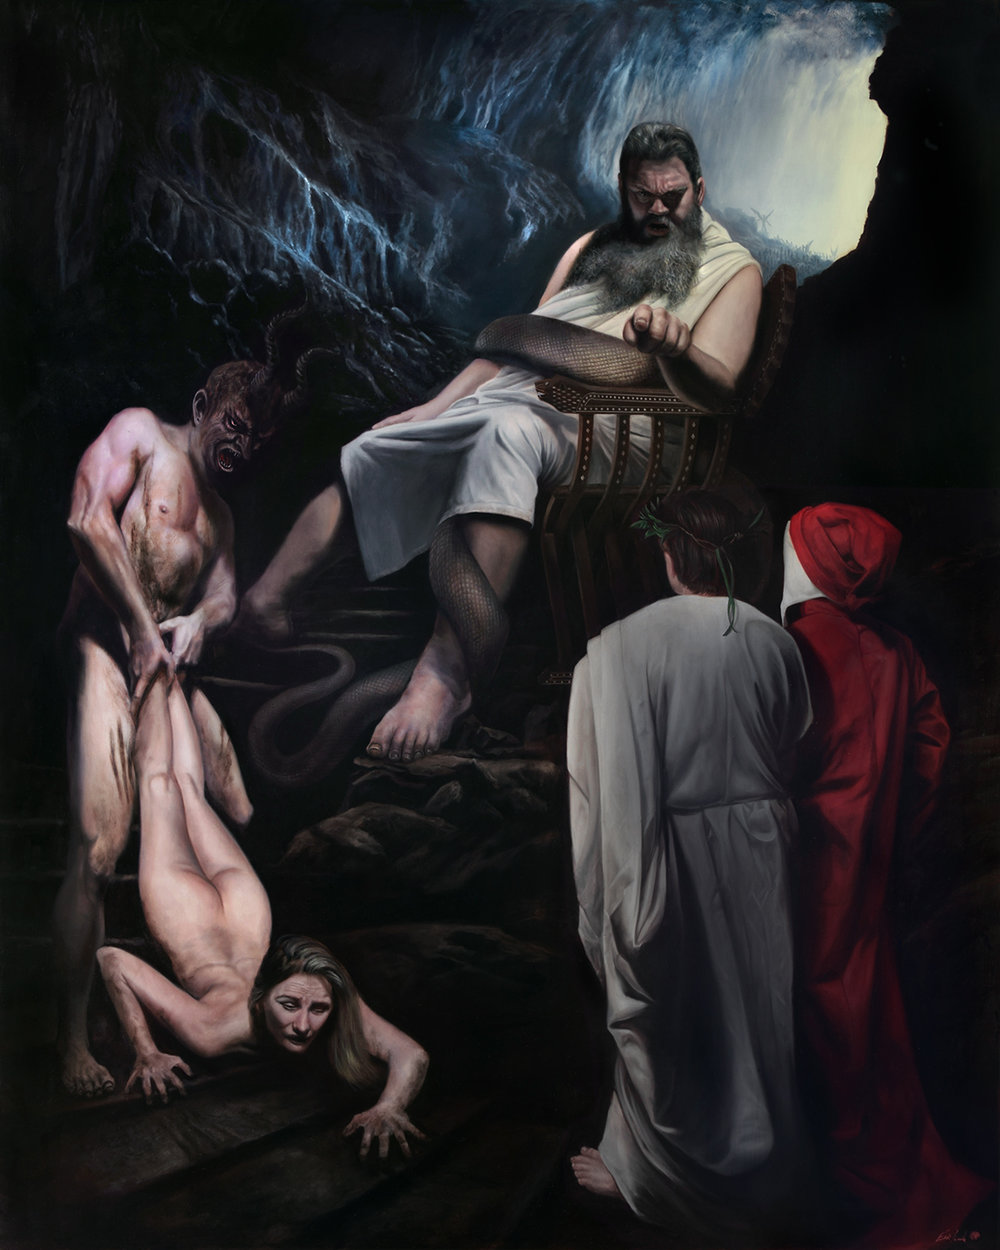 king-minos-dante-inferno-canto-5-painting-art-web.jpg